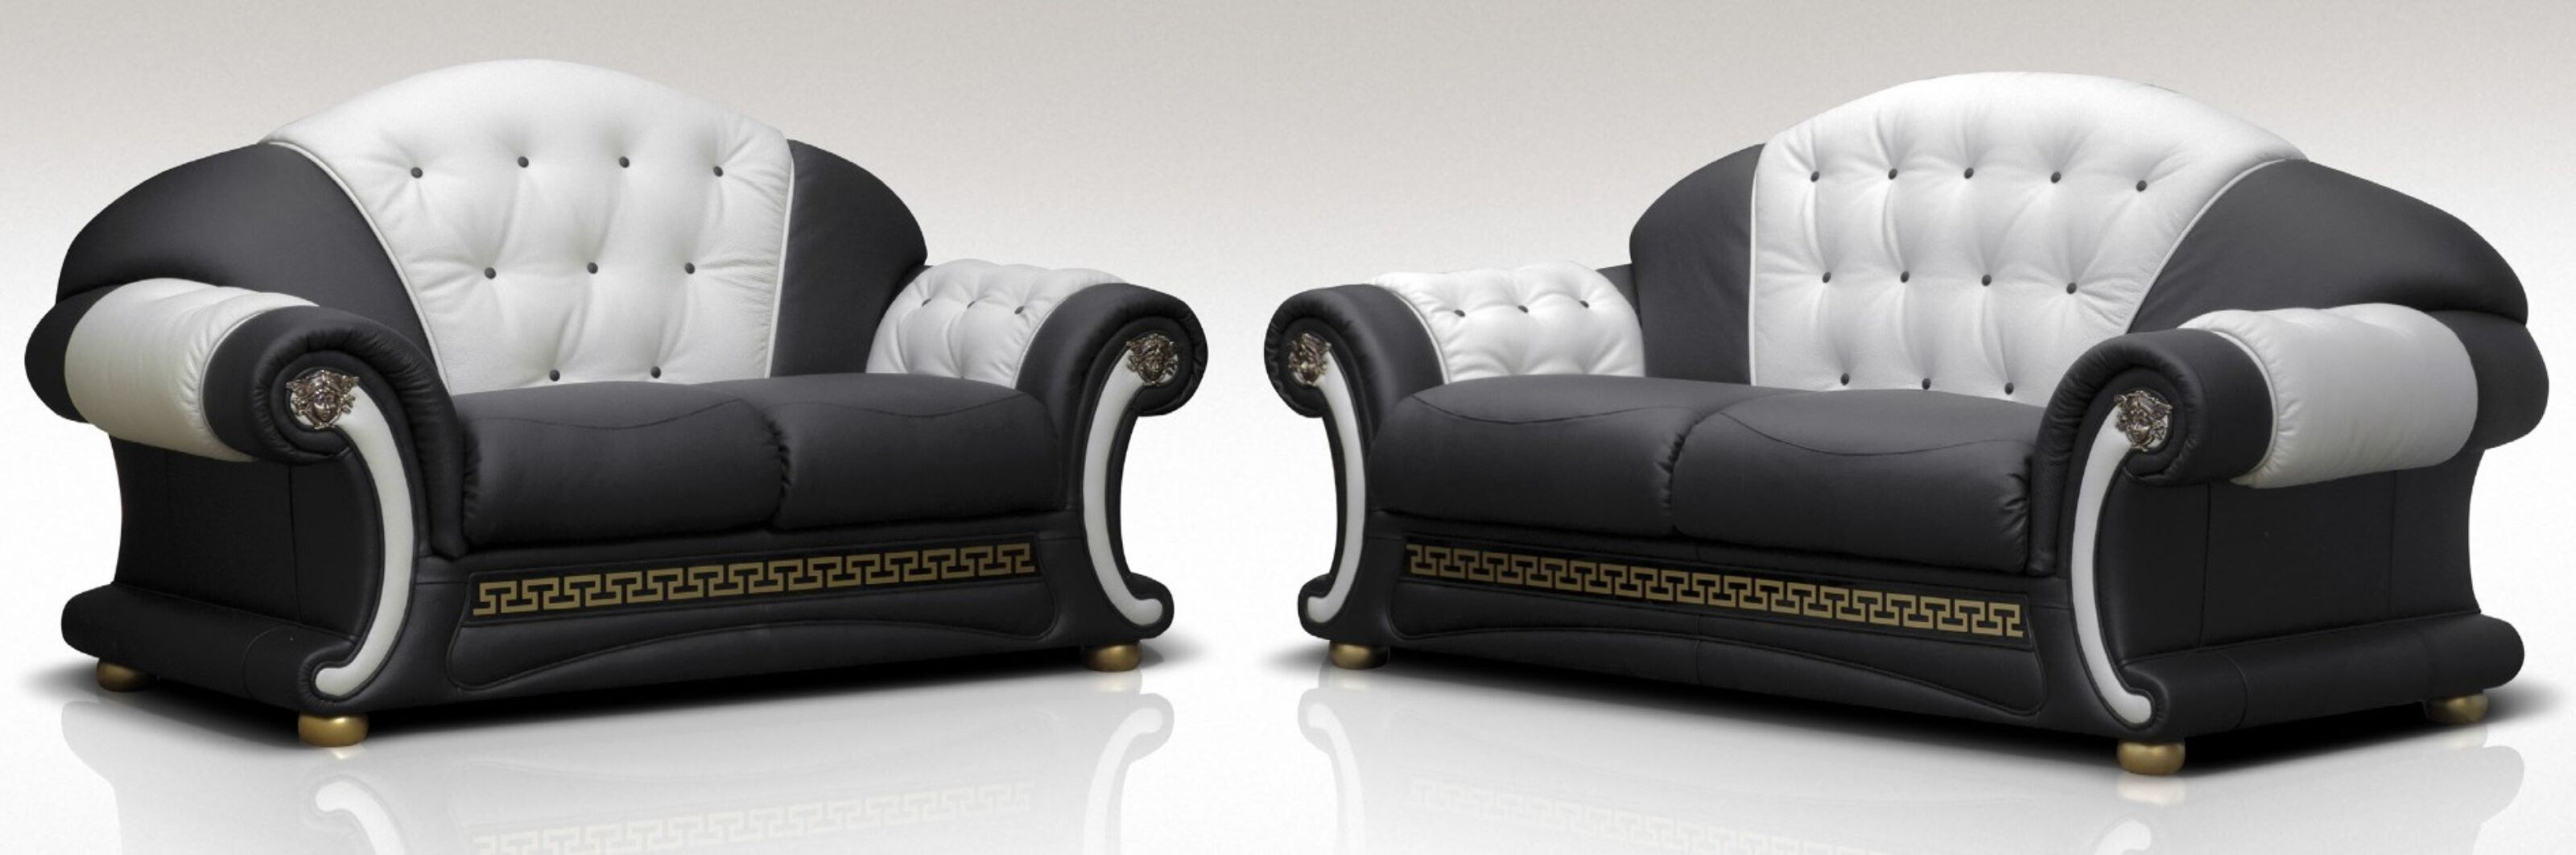 North Carolina 3 Seater + 2 Seater Genuine Italian Black White Leather Sofa  Suite Offer